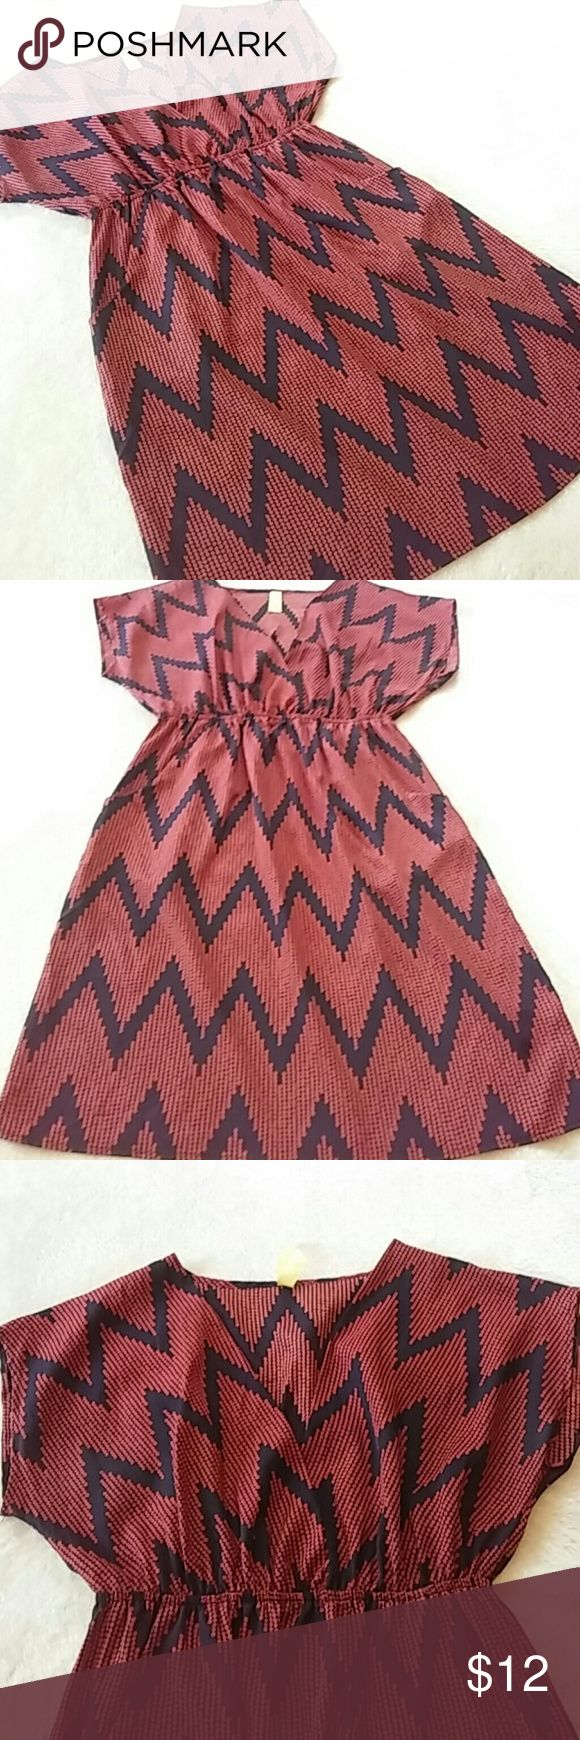 Bee Stitched/FC Dress Cute navy and rusty-orange colored chevron print dress. Plunging, open neckline. Side pockets. Elasticized under bust. 100% poly. Unlined. Would look great over tights. Excellent condition. Francesca's Collections Dresses Mini